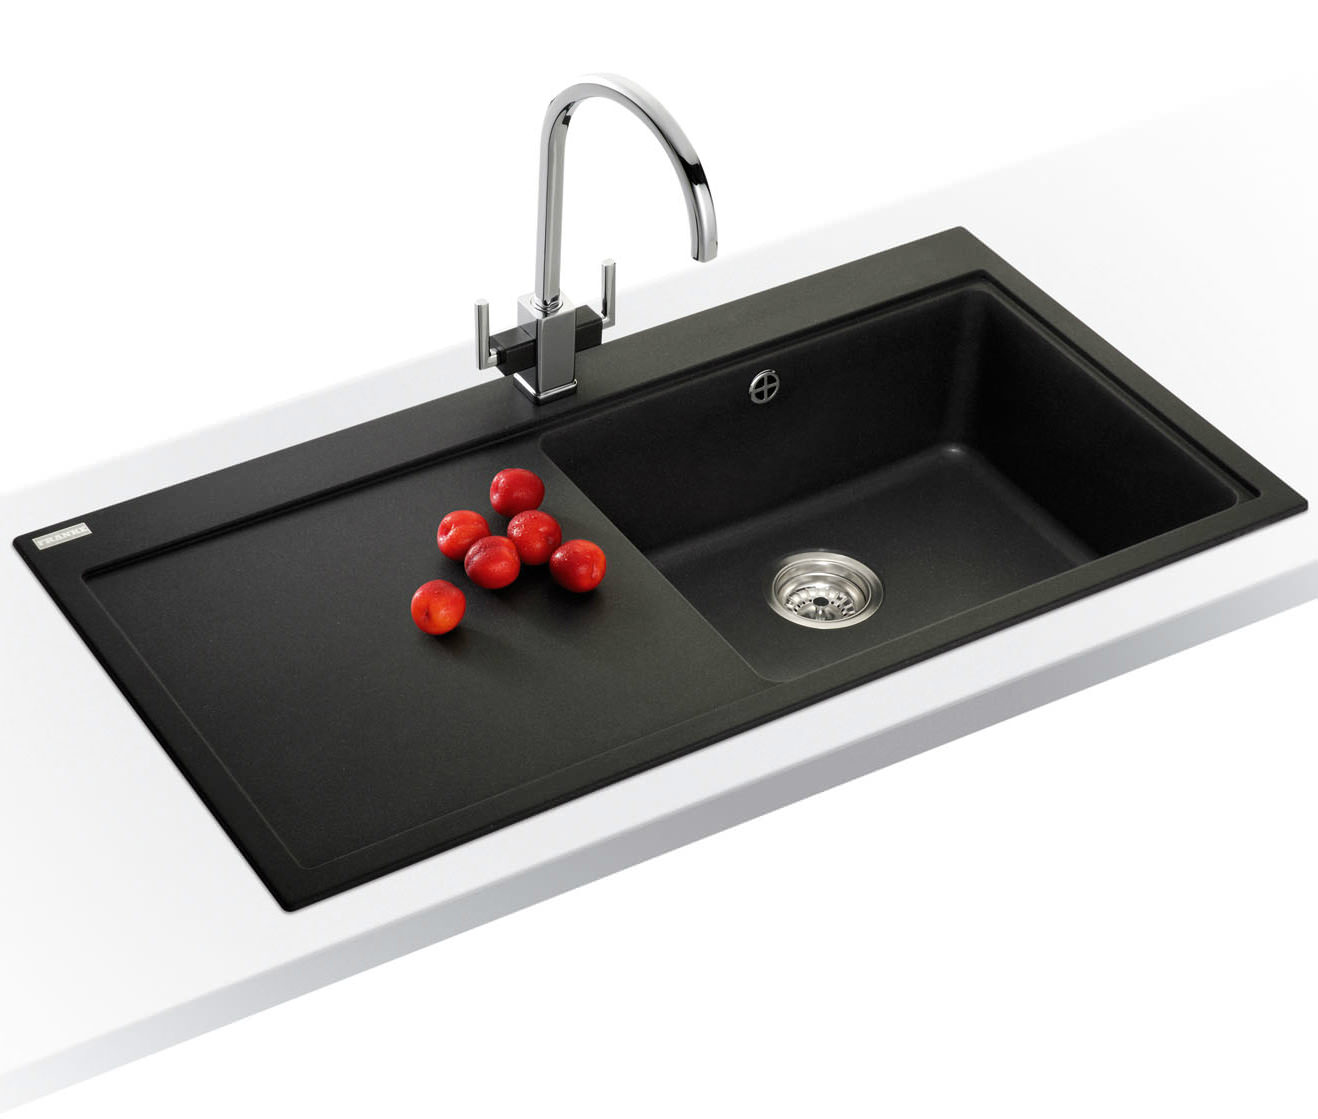 ... of Franke Mythos MTG 611 Fragranite Onyx 1.0 Bowl Inset Kitchen Sink